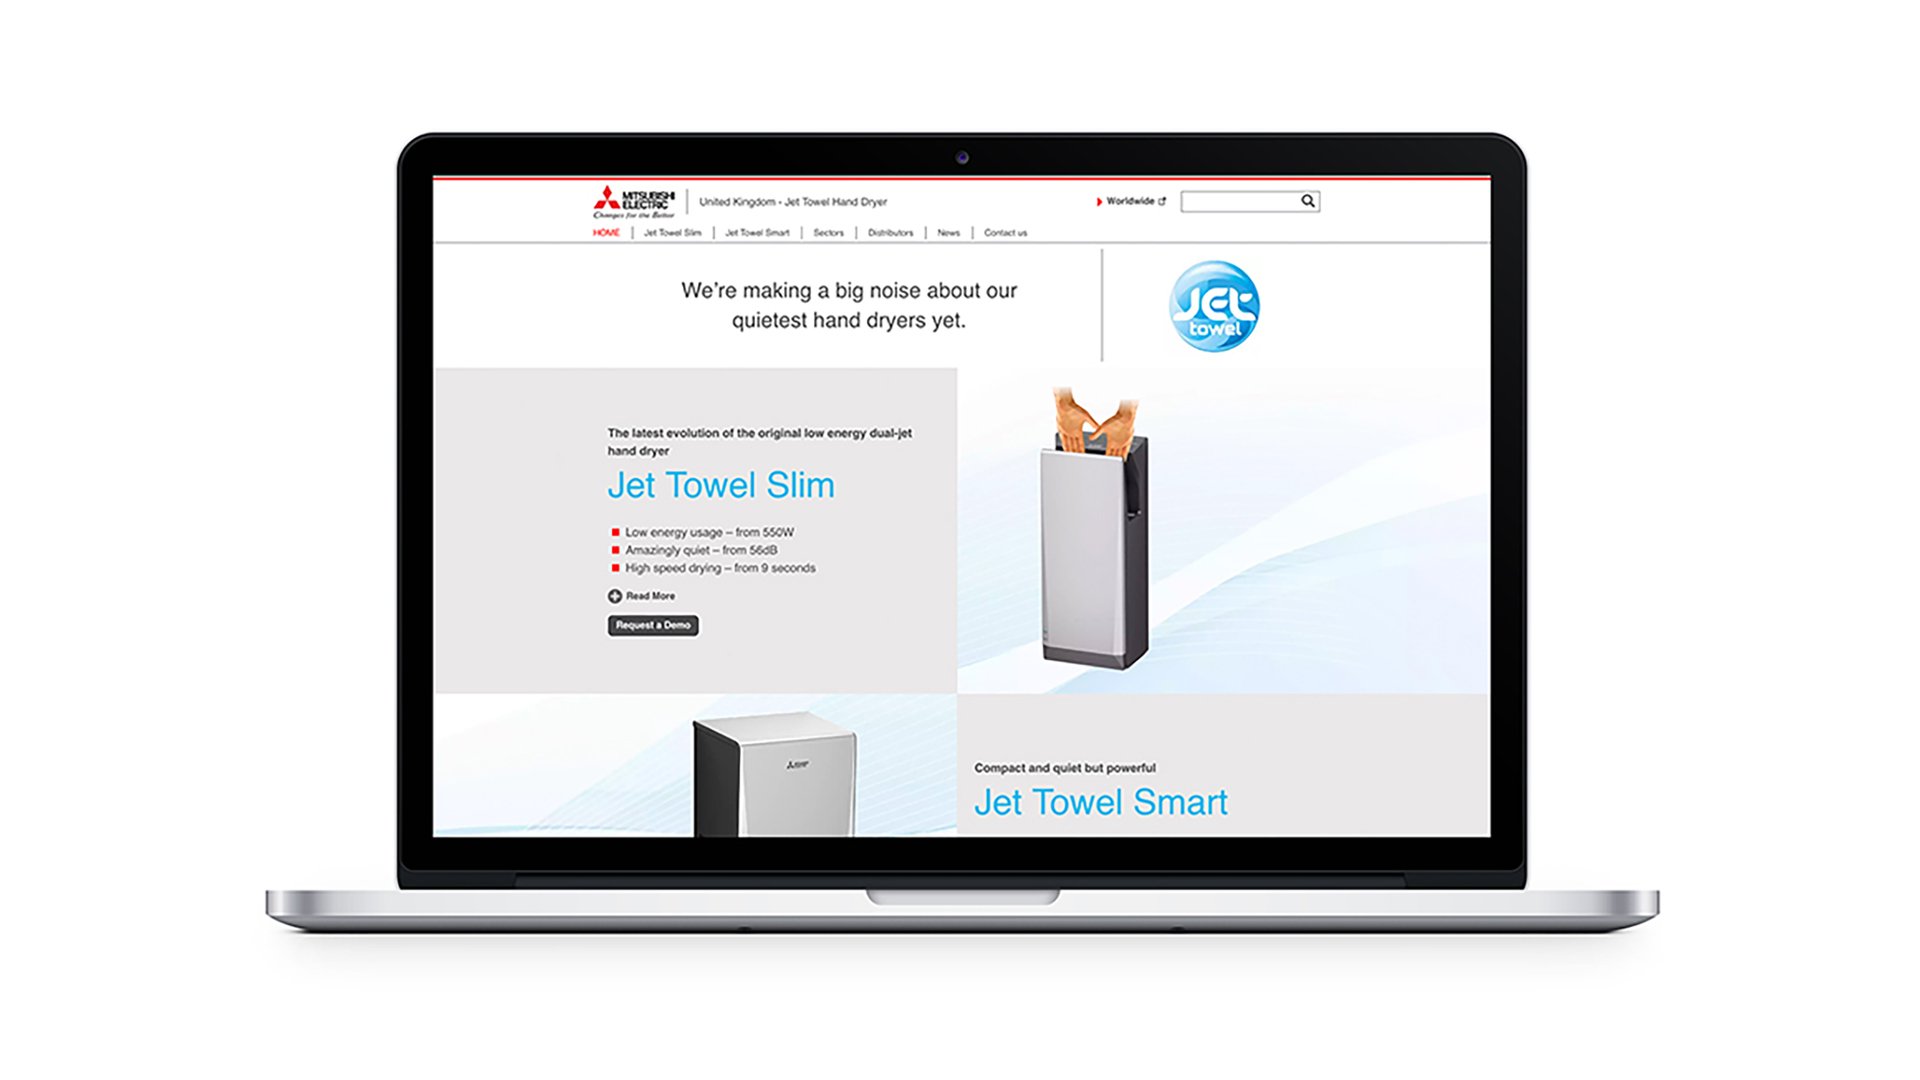 Mitsubishi Electric Jet Towel Website Design